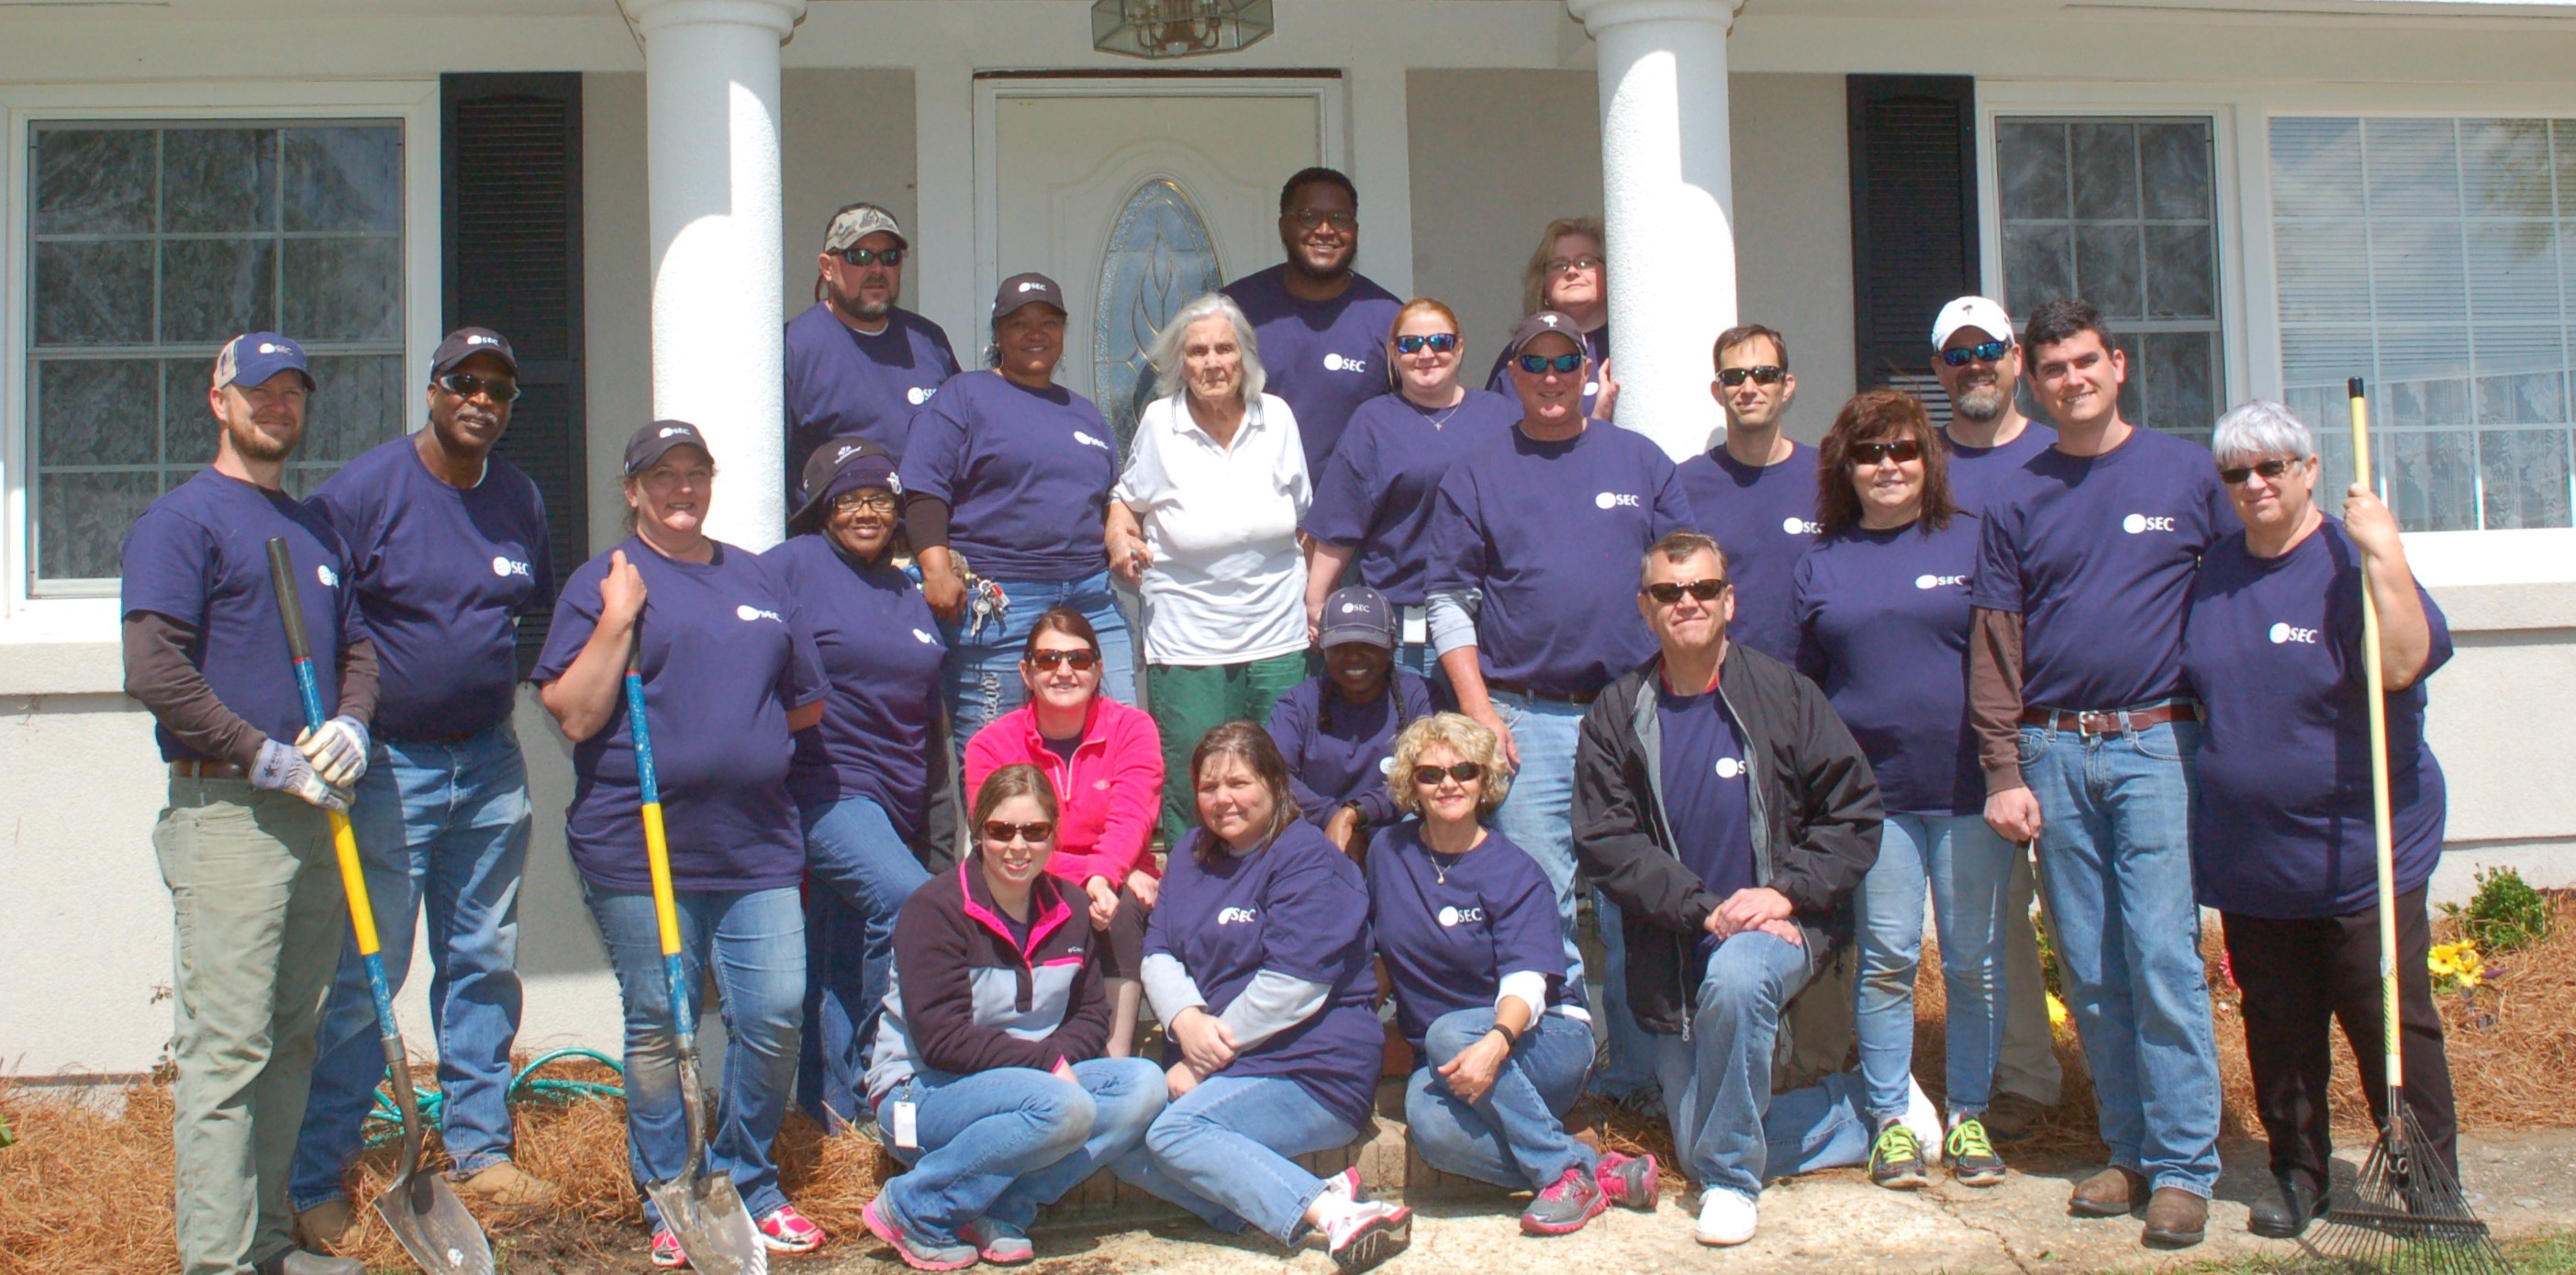 Belton home group photo